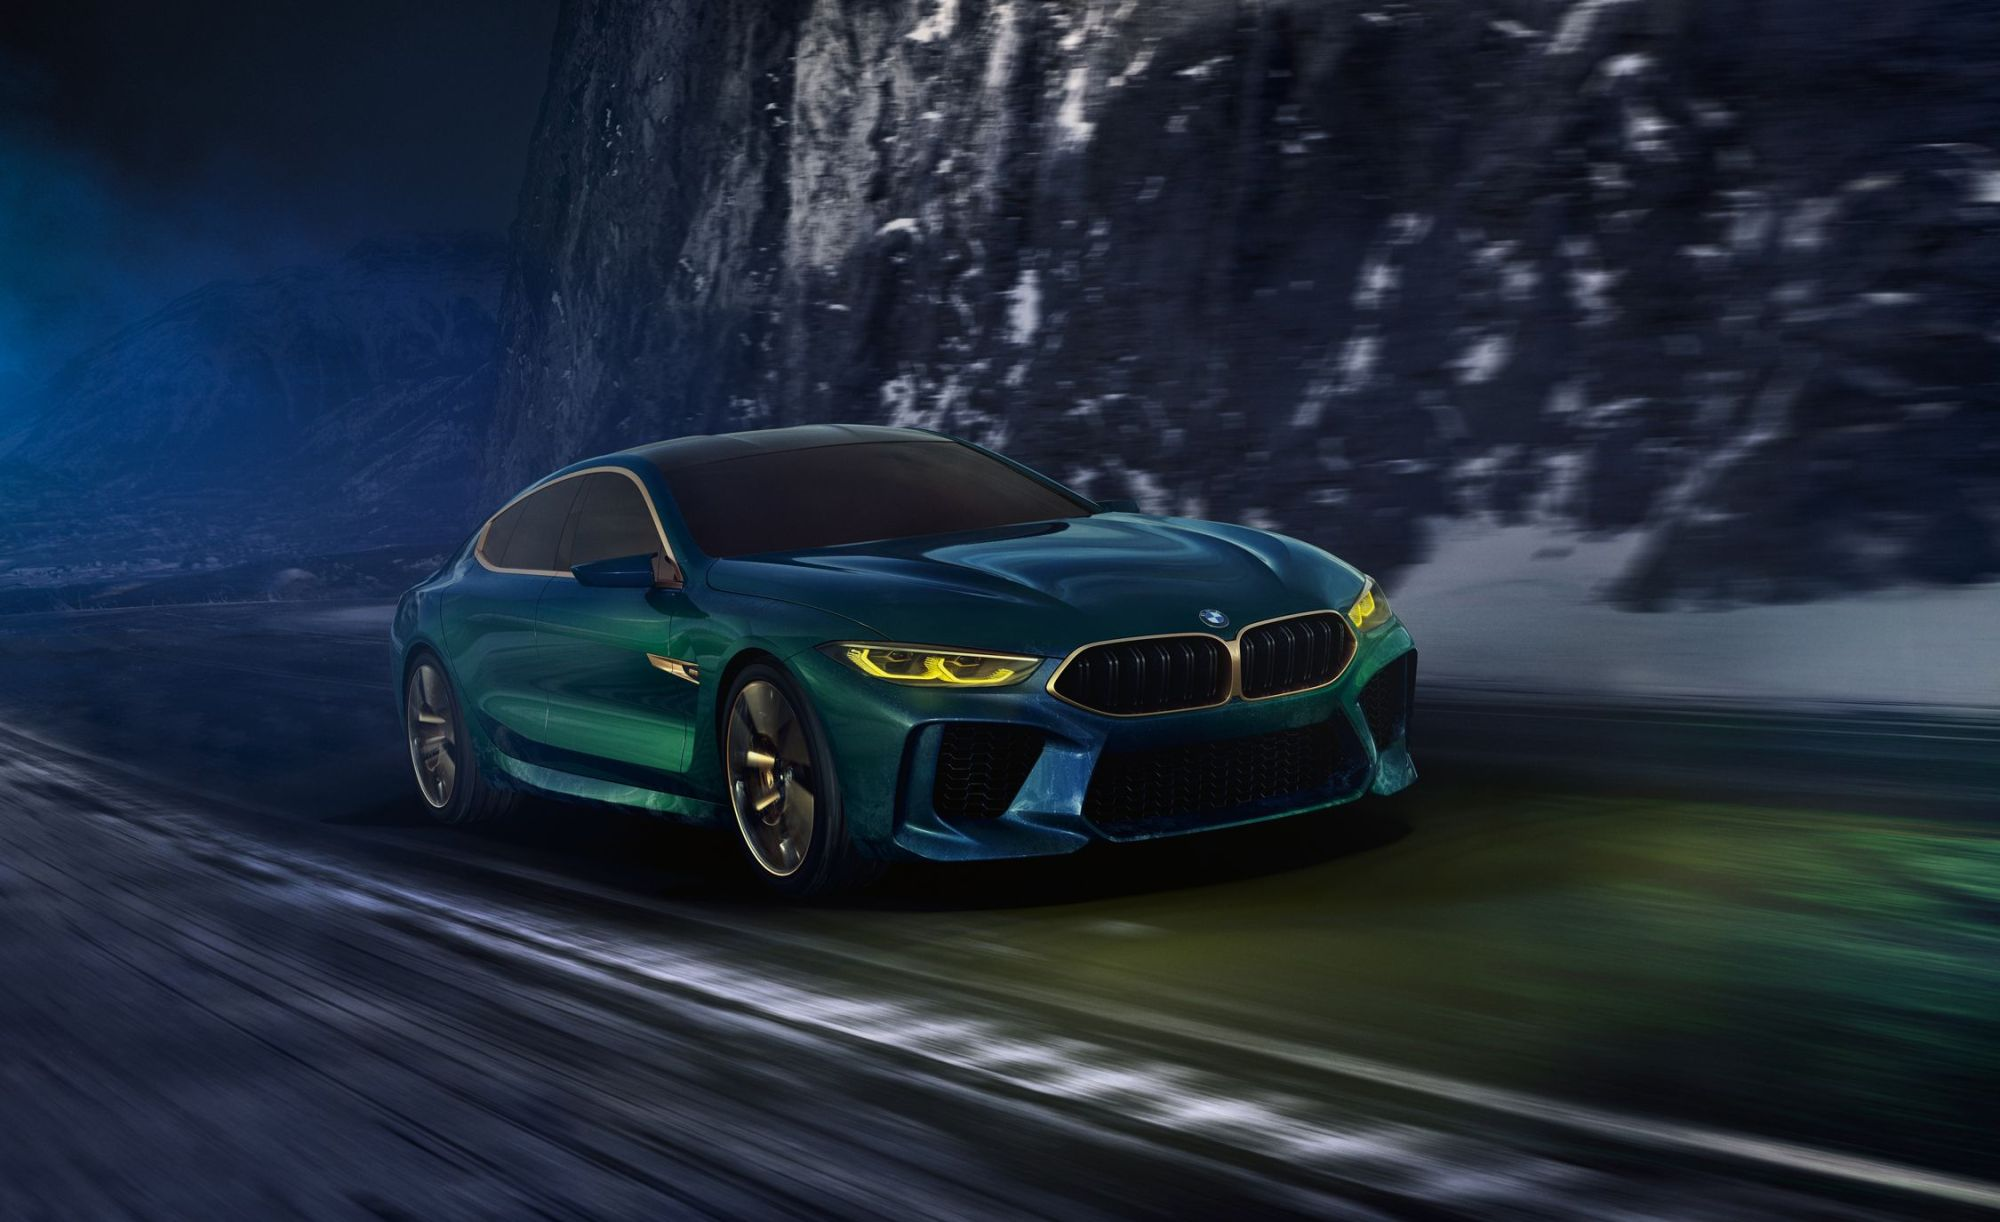 hight resolution of bmw m8 gran coupe reviews bmw m8 gran coupe price photos and specs car and driver